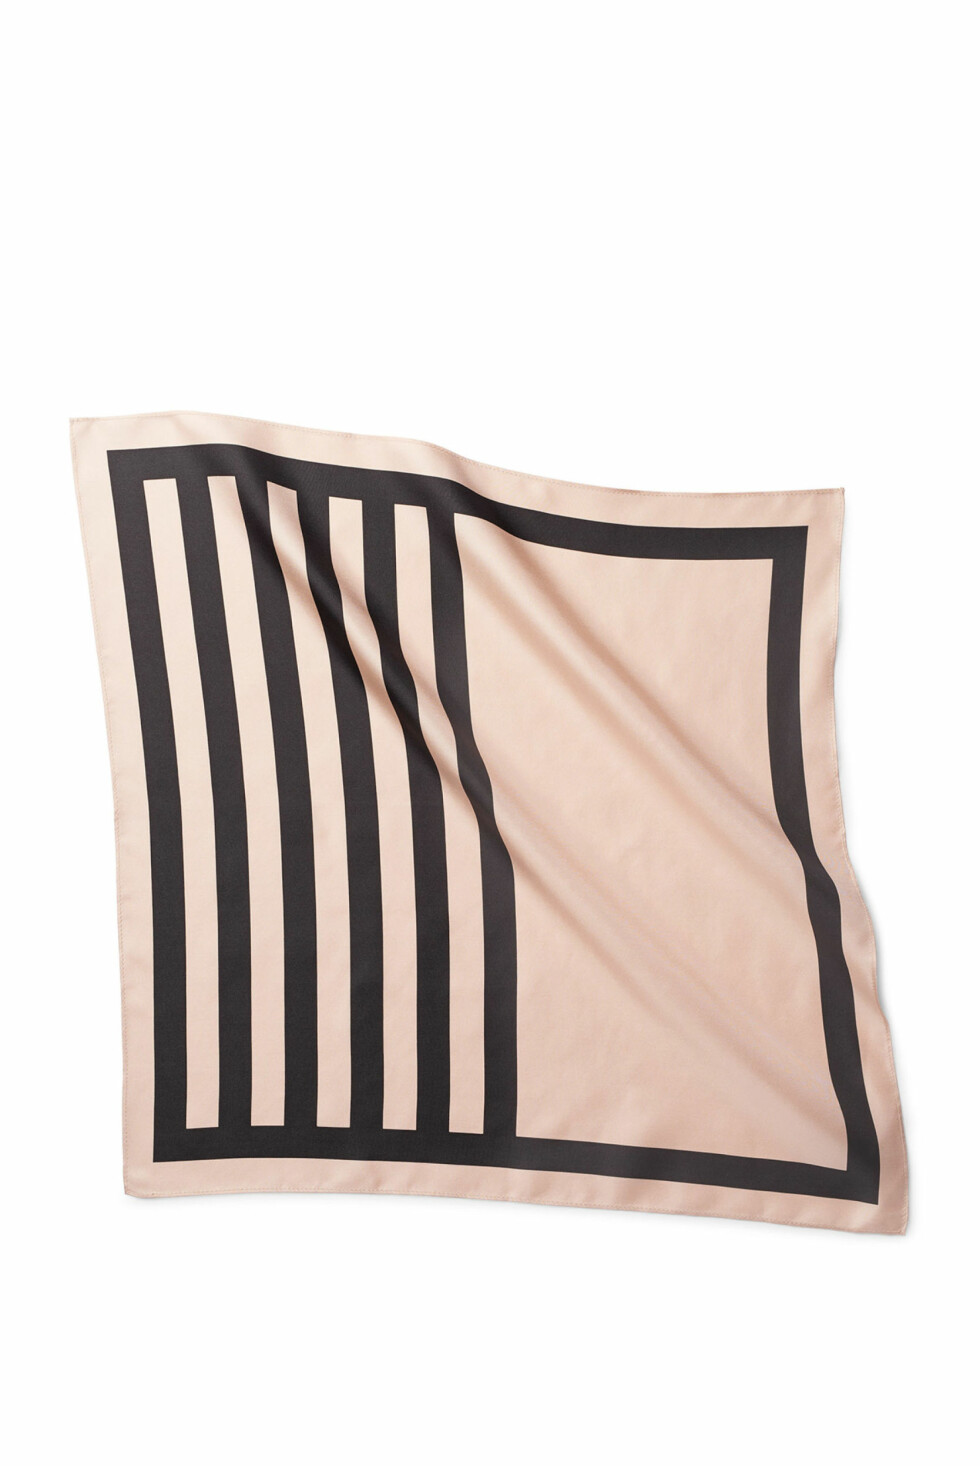 <strong>Sjal fra Weekday |350,-| https:</strong>//www.weekday.com/en_sek/women/categories/new-arrivals/_jcr_content/subdepartmentPar/productlisting_86054396.products/product.draco-silk-scarf-beige.0611519001.html